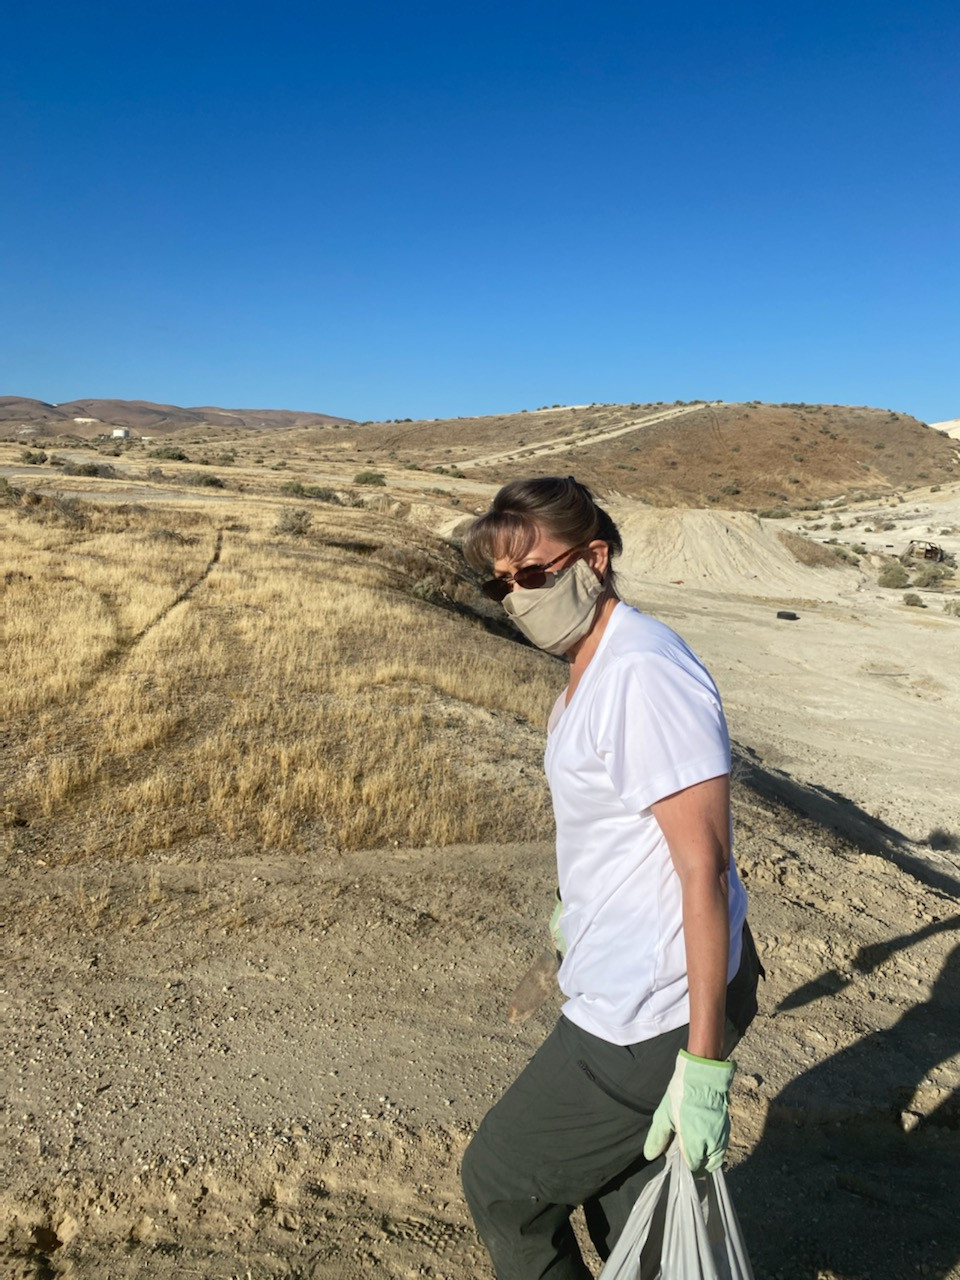 Photo of the author walking in the barren hills harvesting the clay. She has a mask on, white shirt, khaki pants, gloves, and a bag.